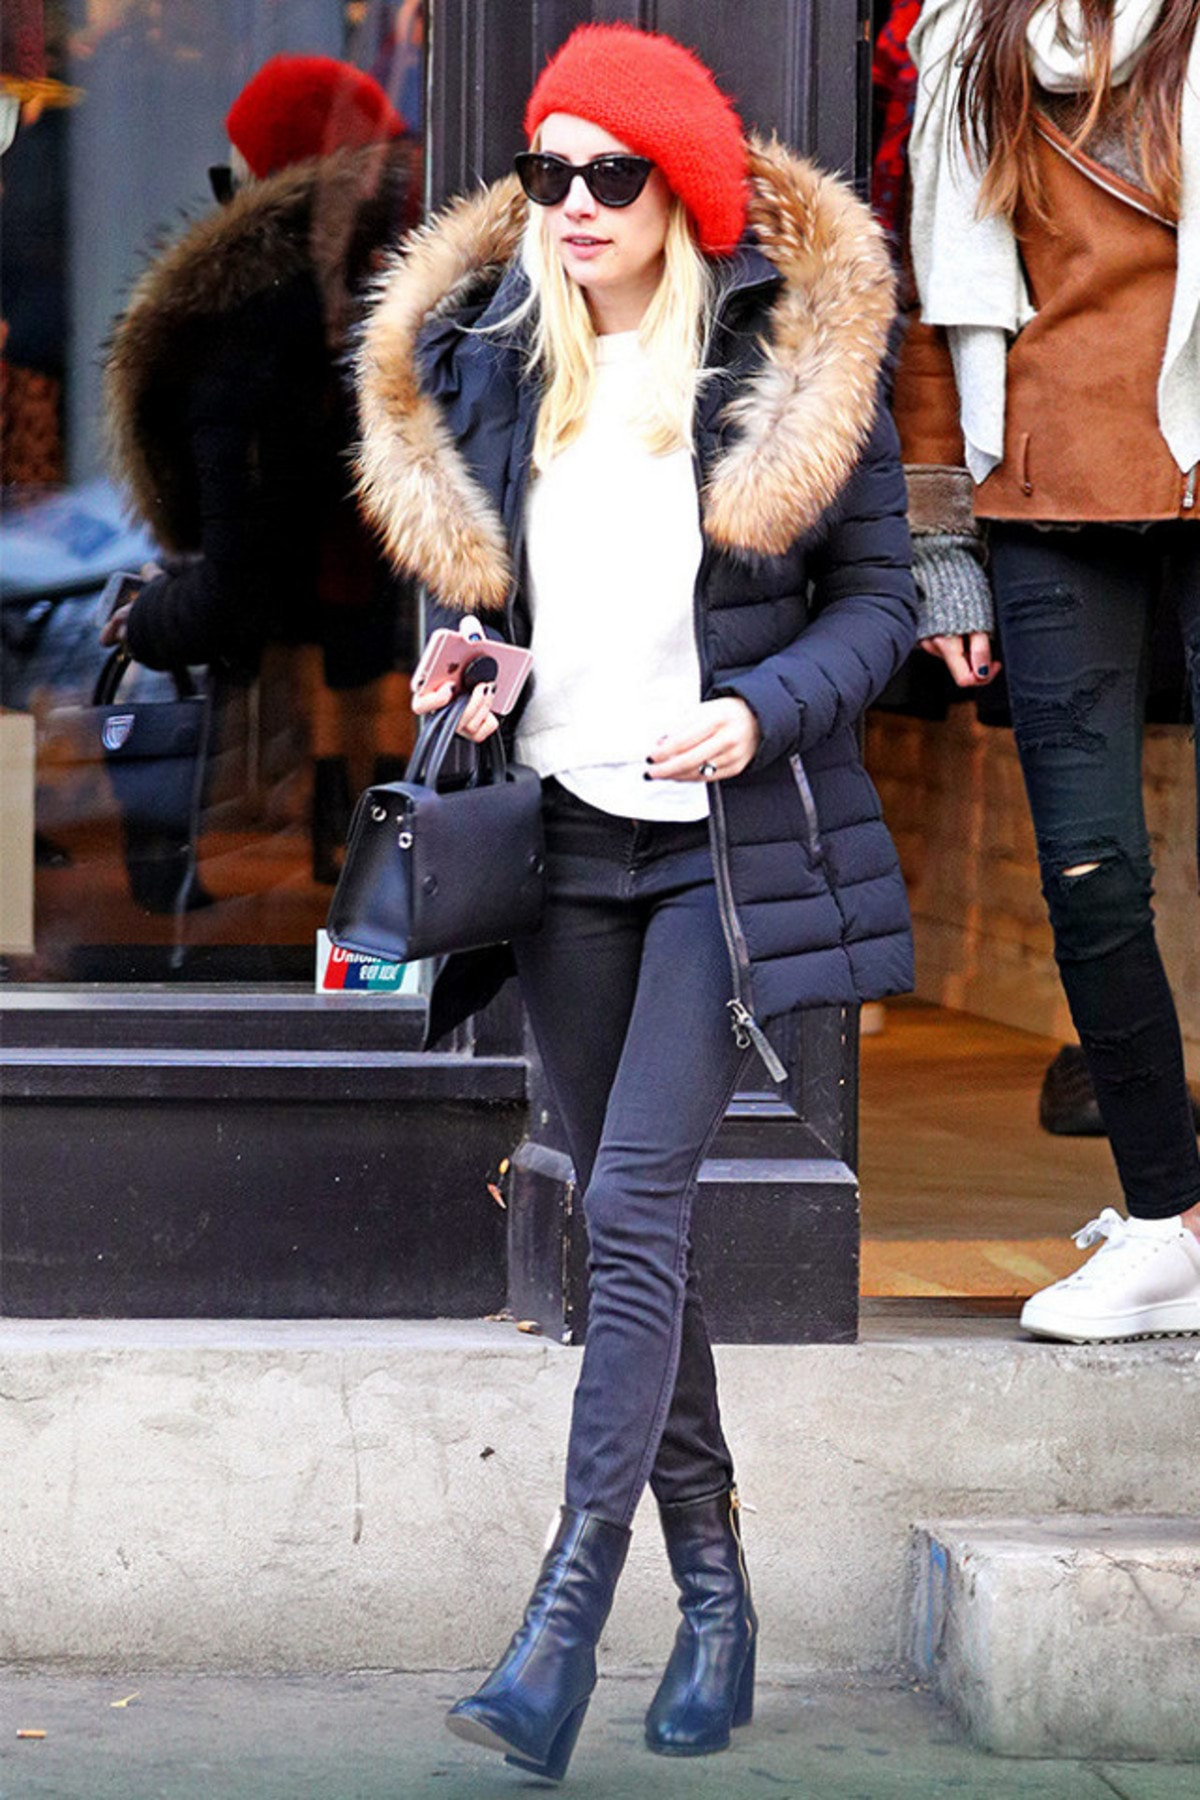 this-is-the-perfect-outfit-for-girls-who-are-always-cold-2077935.640x0c